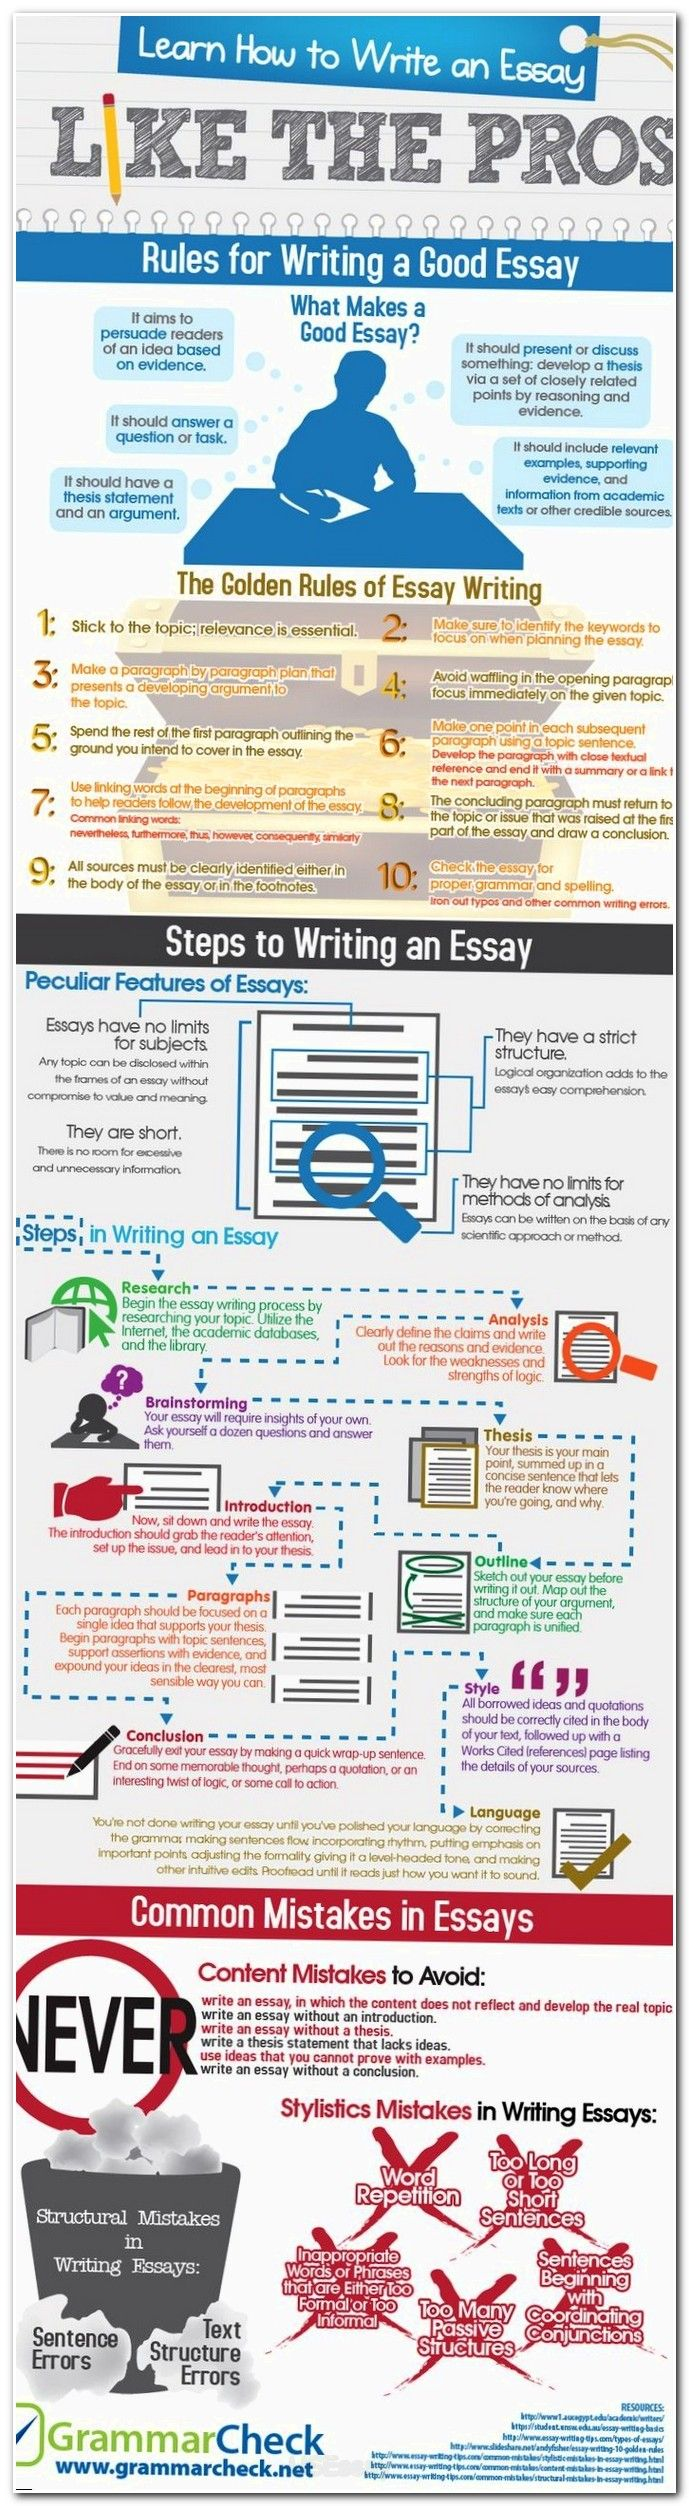 best opinion essay structure ideas persuasive essay wrightessay music important in our life sample paper of ielts writing